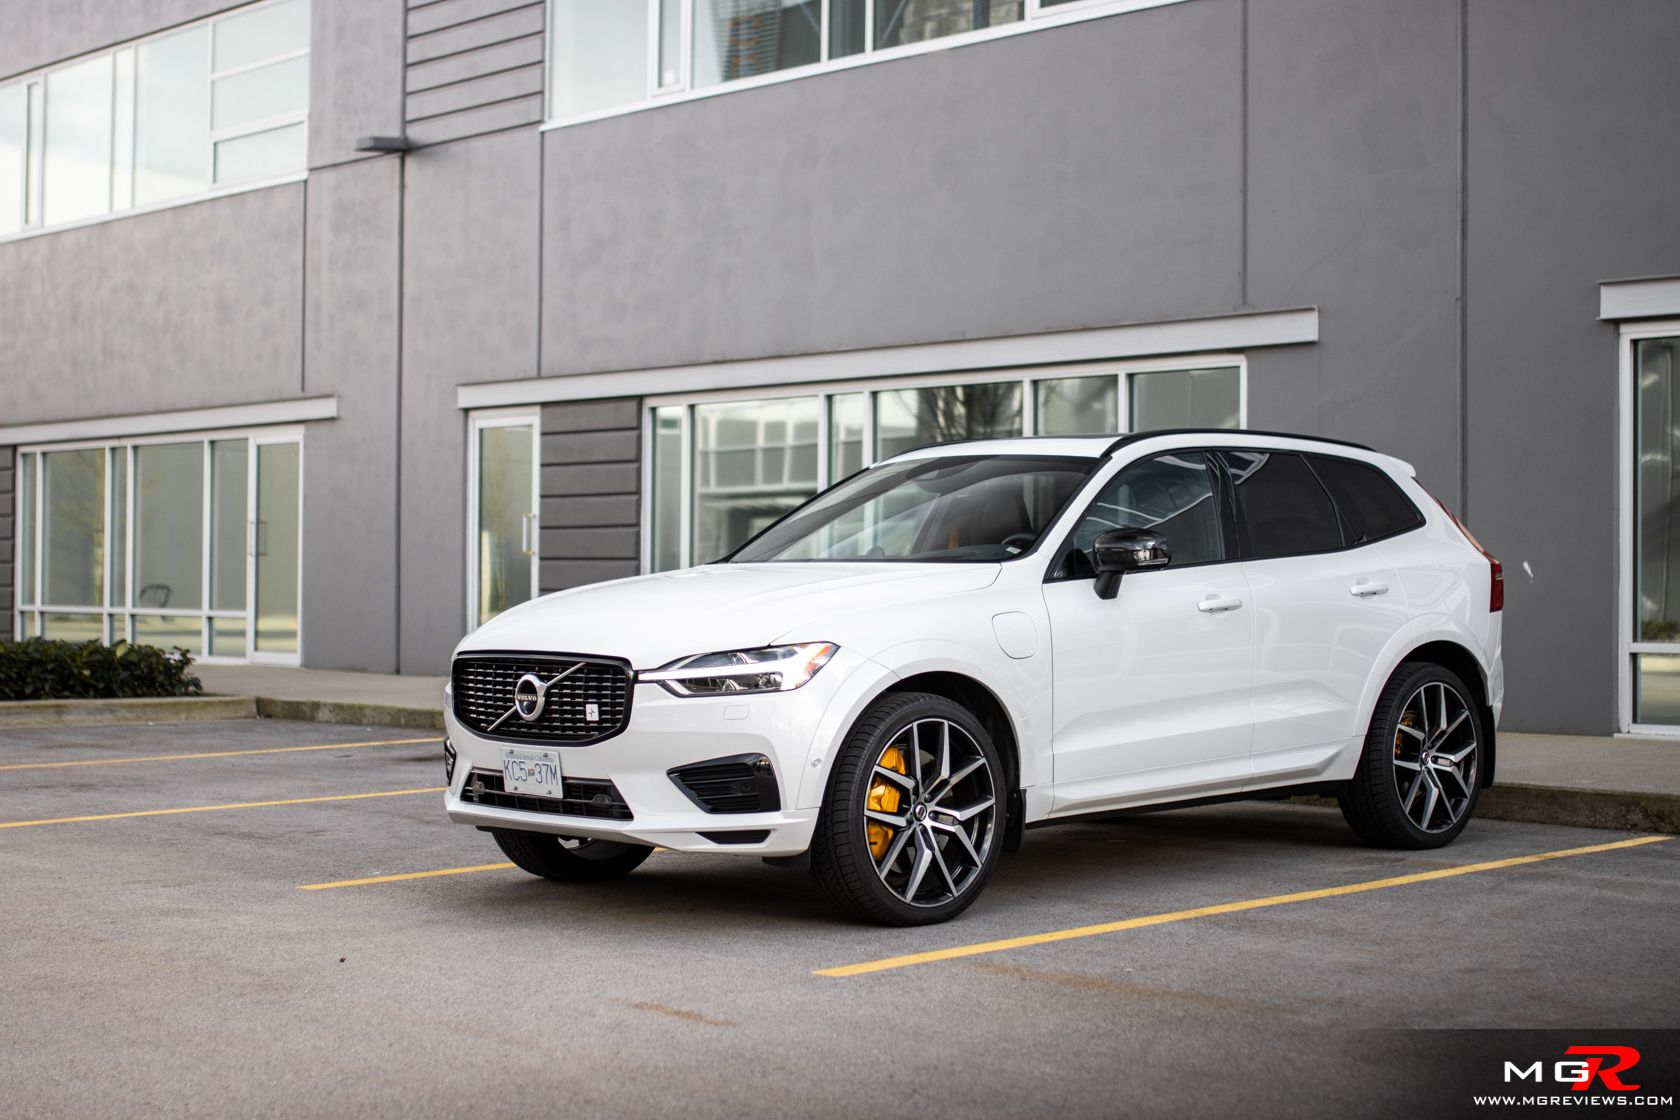 Review 2020 Volvo Xc60 T8 Polestar Engineered Mgreviews Com In 2020 Volvo Xc60 Volvo Automotive Photography